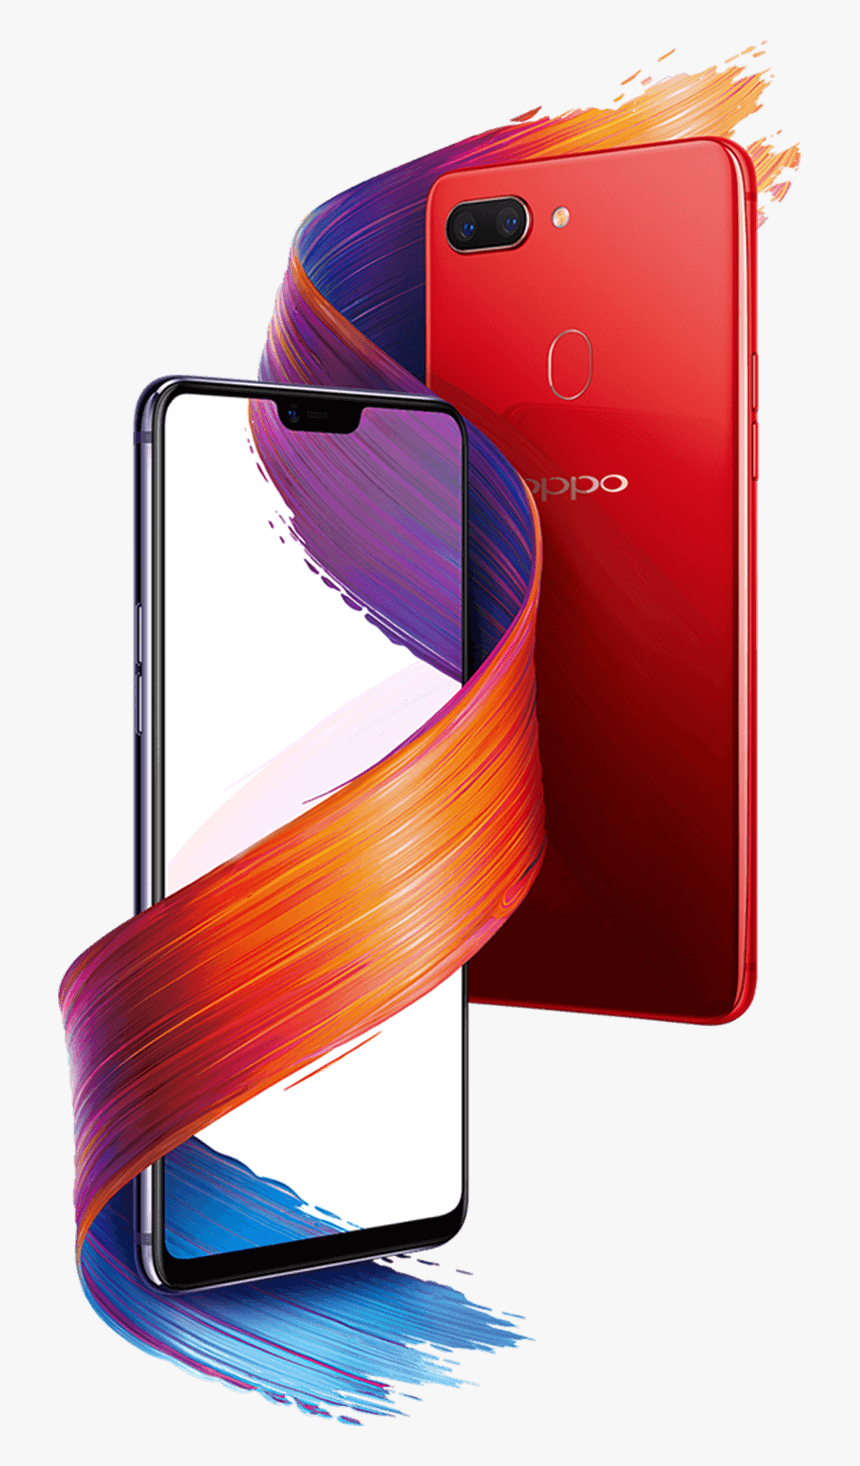 Oneplus 6 Free Png, Transparent Png, Free Download